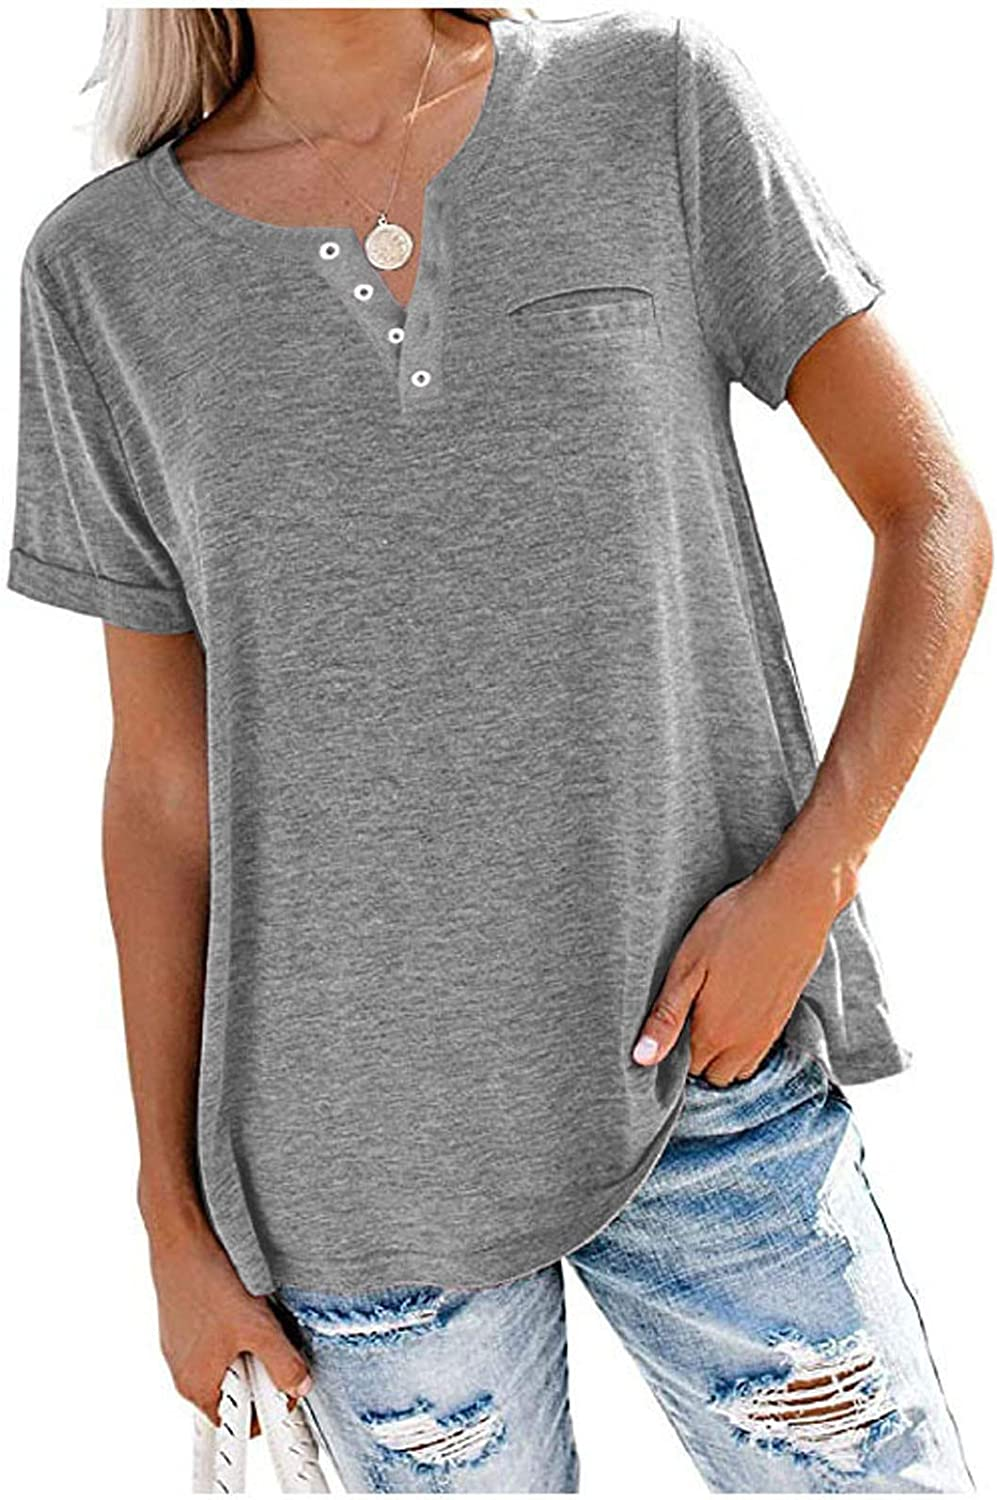 Aukbays T-Shirt for Womens Button Solid Basic Short Sleeve Tops V Neck Summer Loose Tees T-Shirts Blouses with Pocket